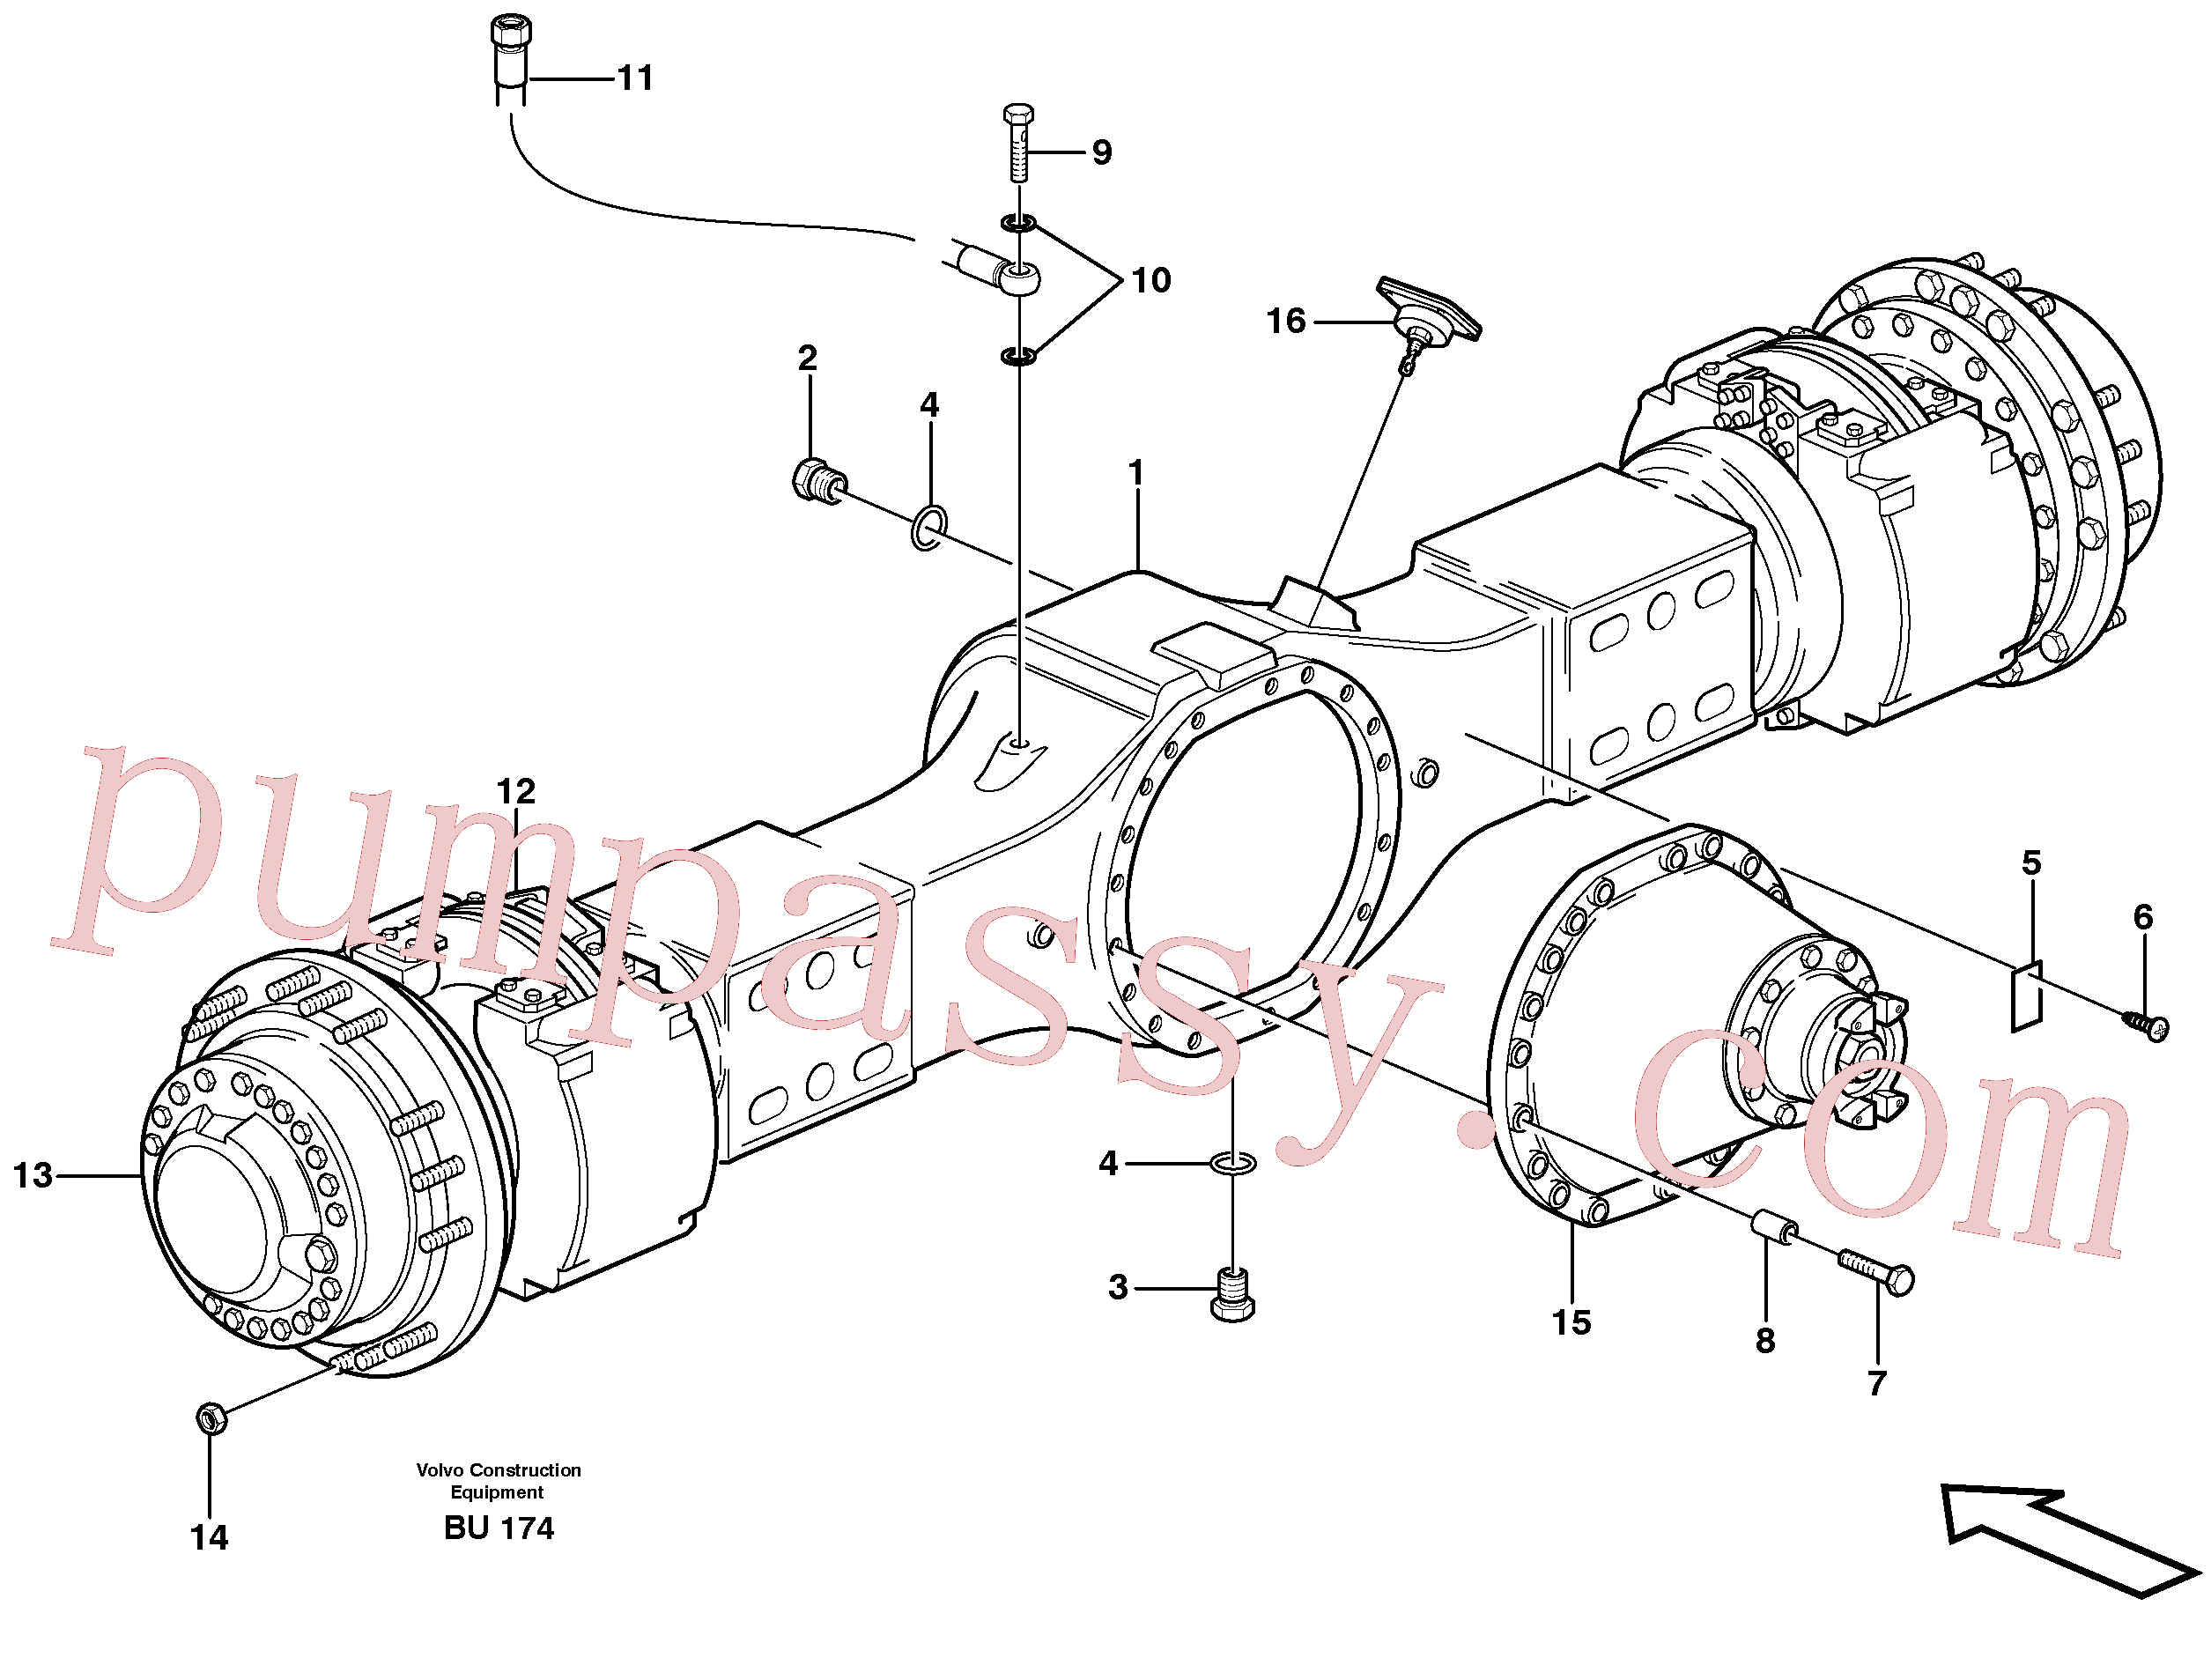 VOE11102959 for Volvo Planetary axle, motor unit(BU174 assembly)